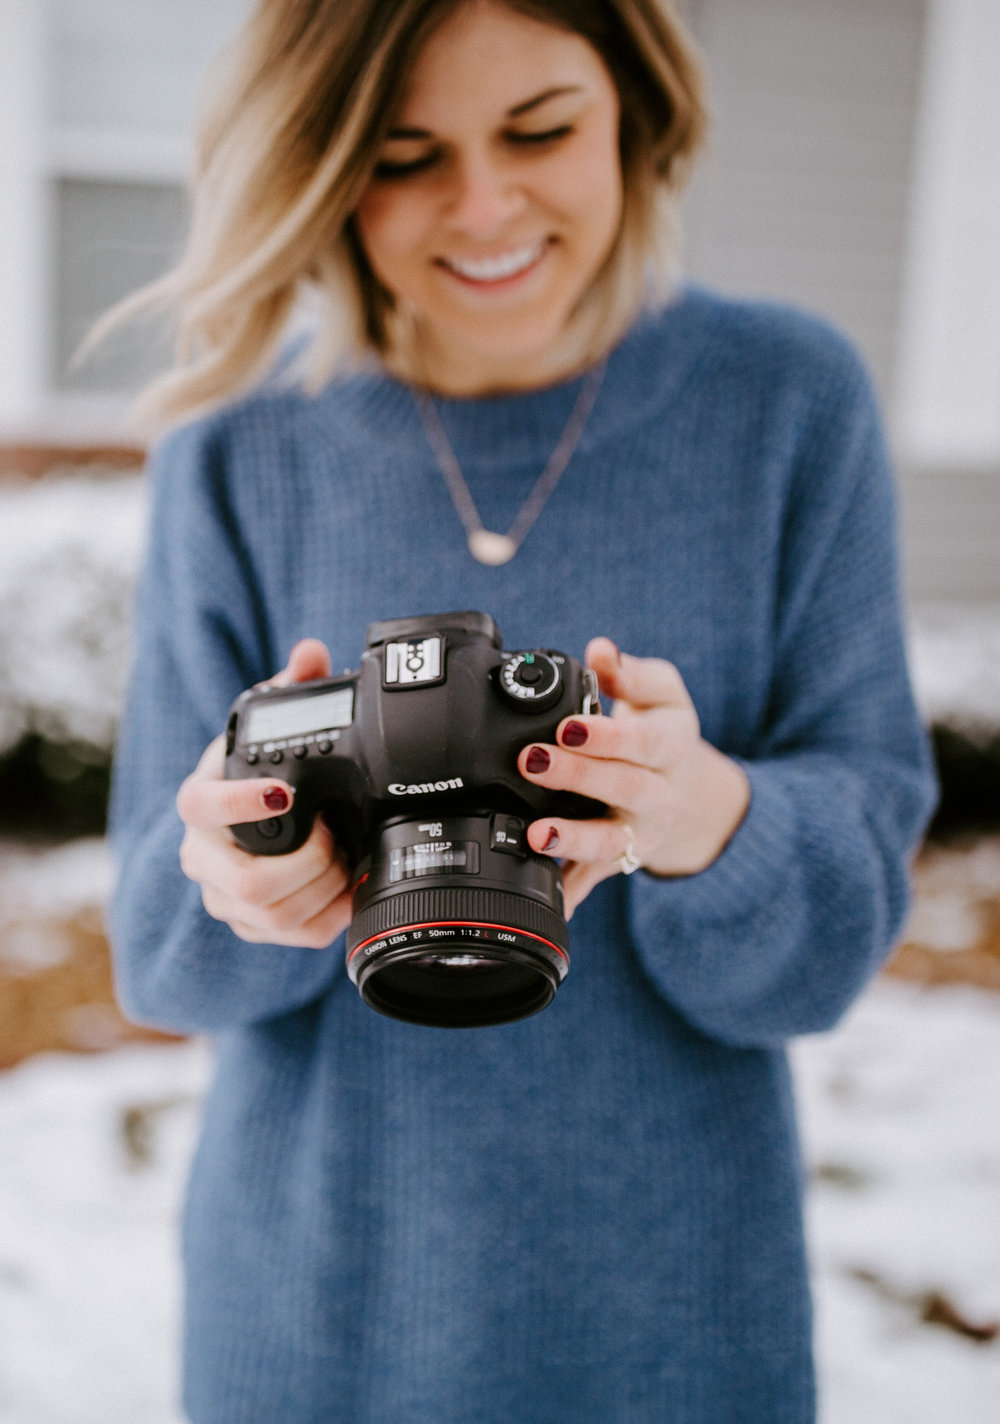 SARAH MOSER IS A WEDDING PHOTOGRAPHER BASED OUT OF NASHVILLE, TN. SHE SPECIALIZES IN NATURAL LIGHT PHOTOGRAPHY AND IS PASSIONATE ABOUT CAPTURING COUPLES IN LOVE.